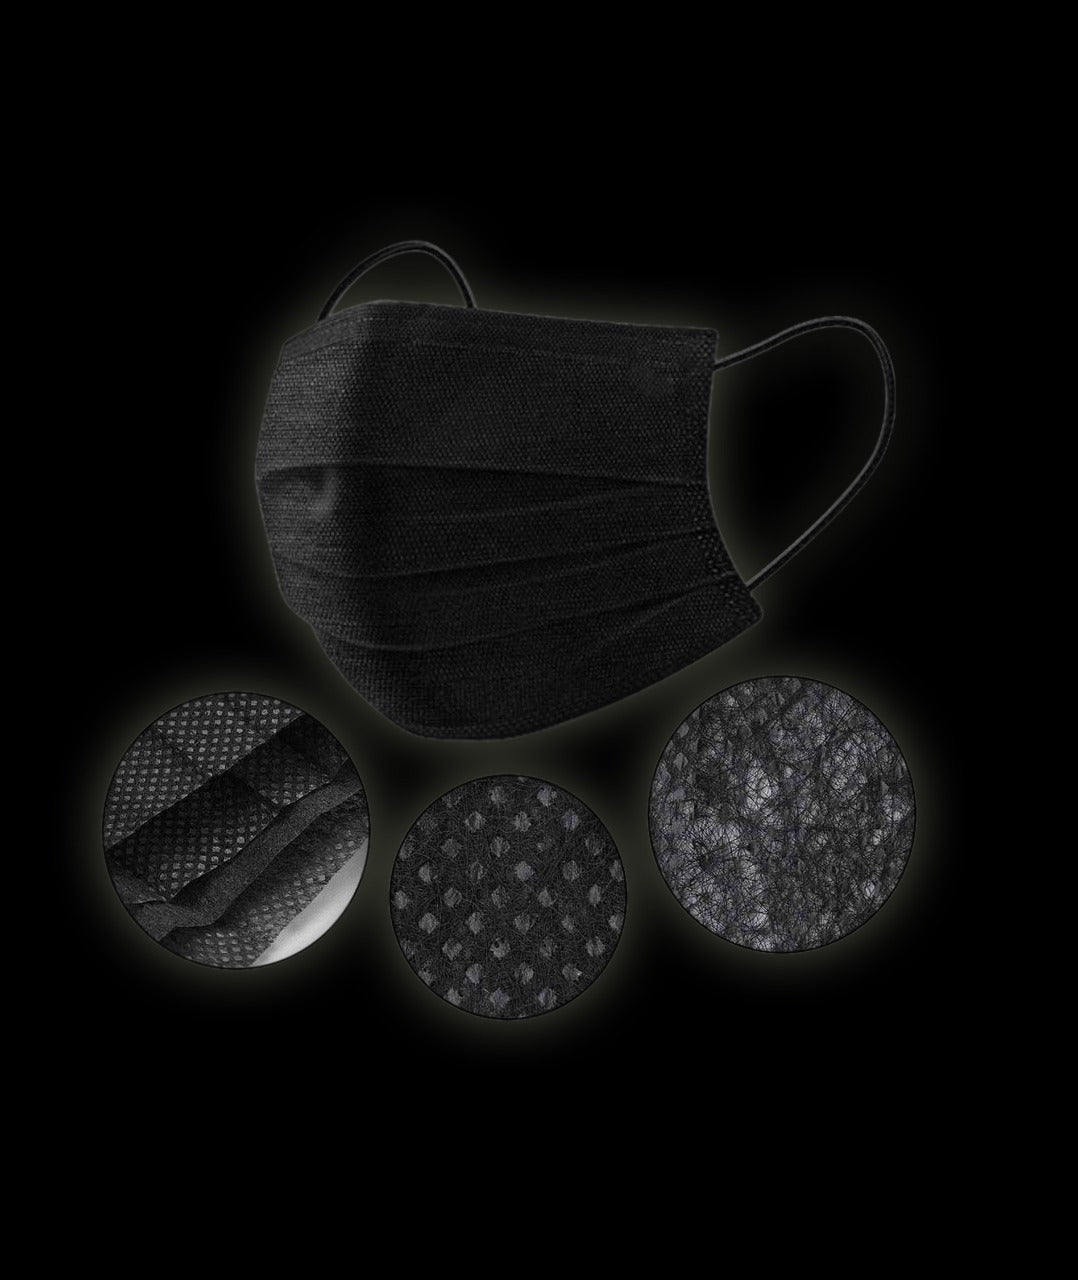 Black Disposable Face Masks Breathable Dust Mask Stretchable Elastic Ear Loops High Quality 50pcs/Pack (Black)